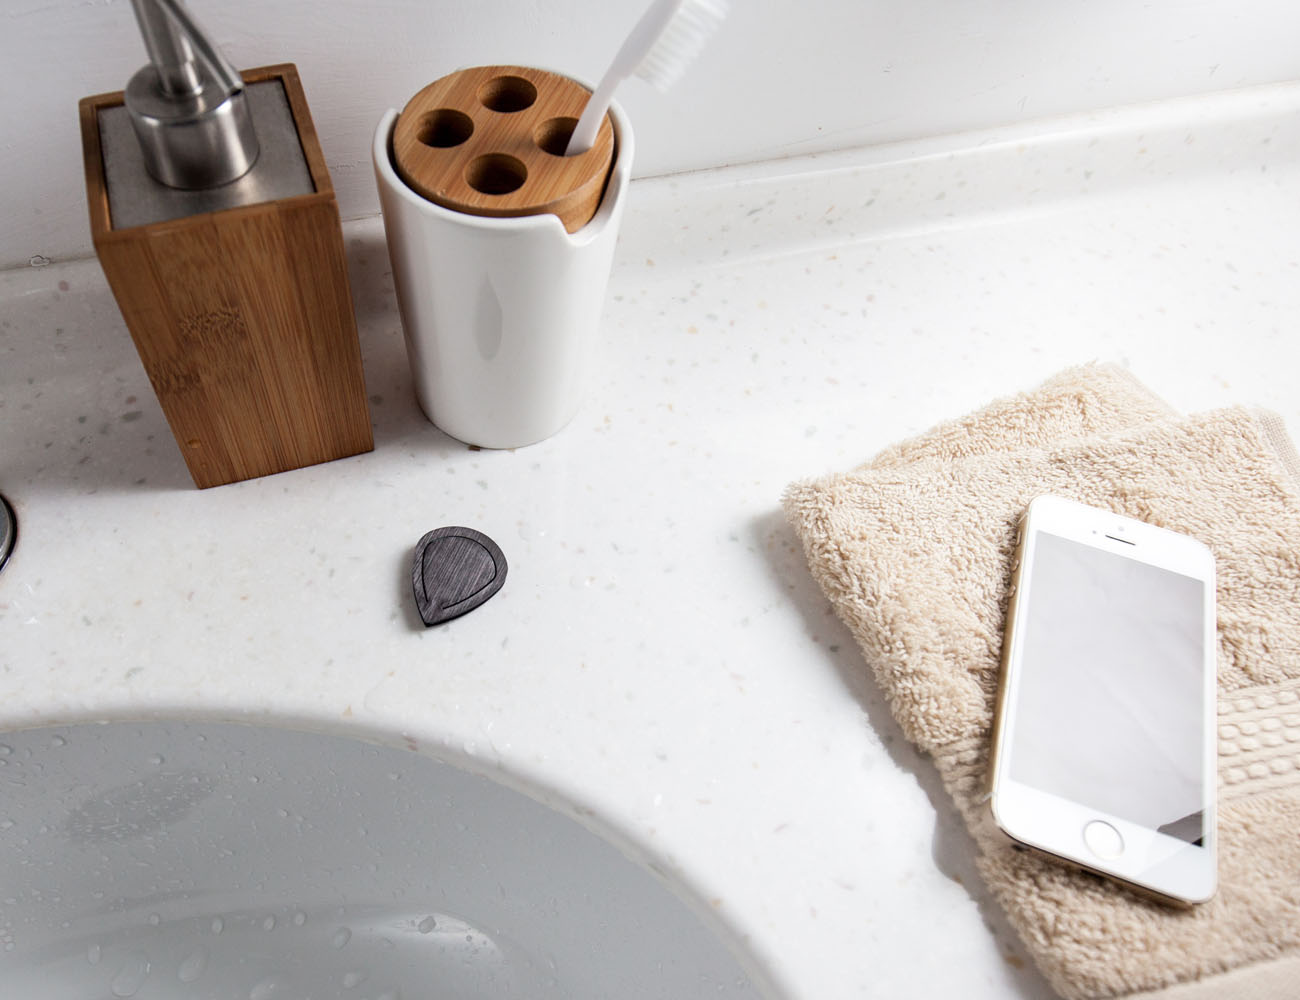 Qmote%3A+The+Water-Resistant+Internet+Remote+For+Smartphones